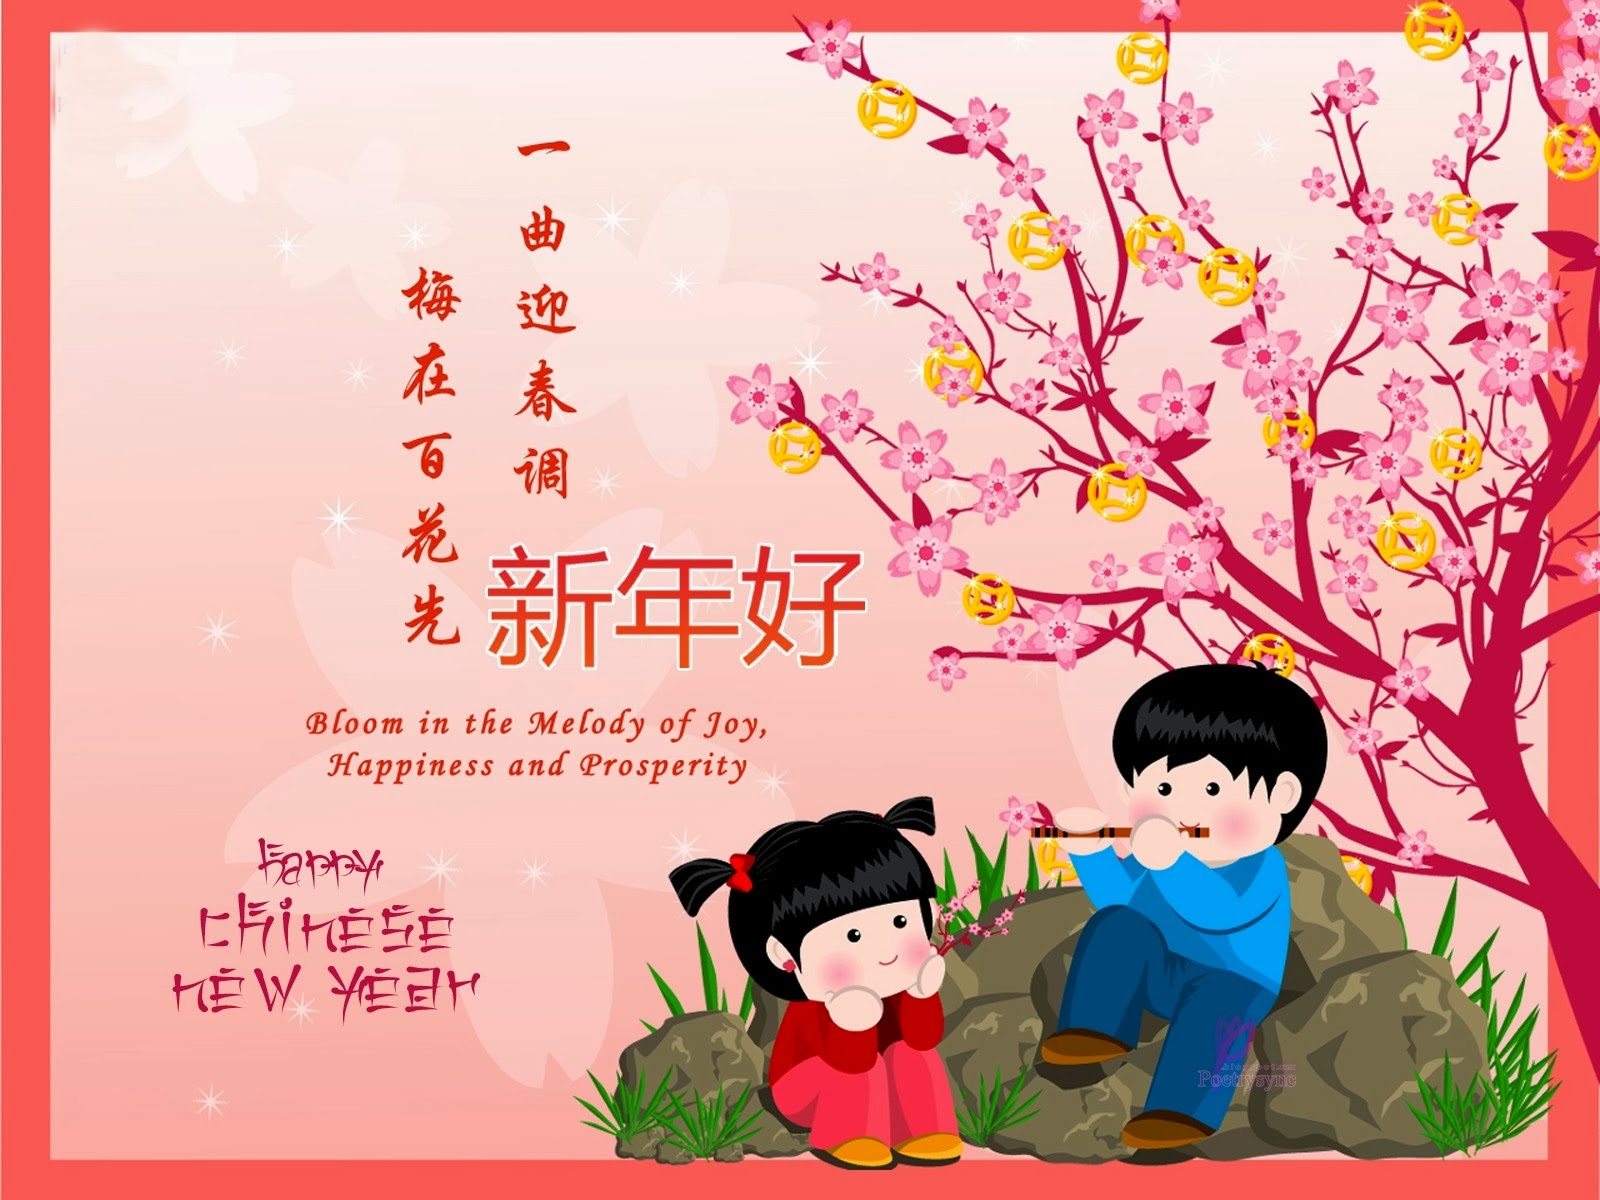 HappyChineseNewYearWishesLunarNewYearHDWallpapersHappyTet . 1600 x 1200.Chinese New Year Sayings Greetings